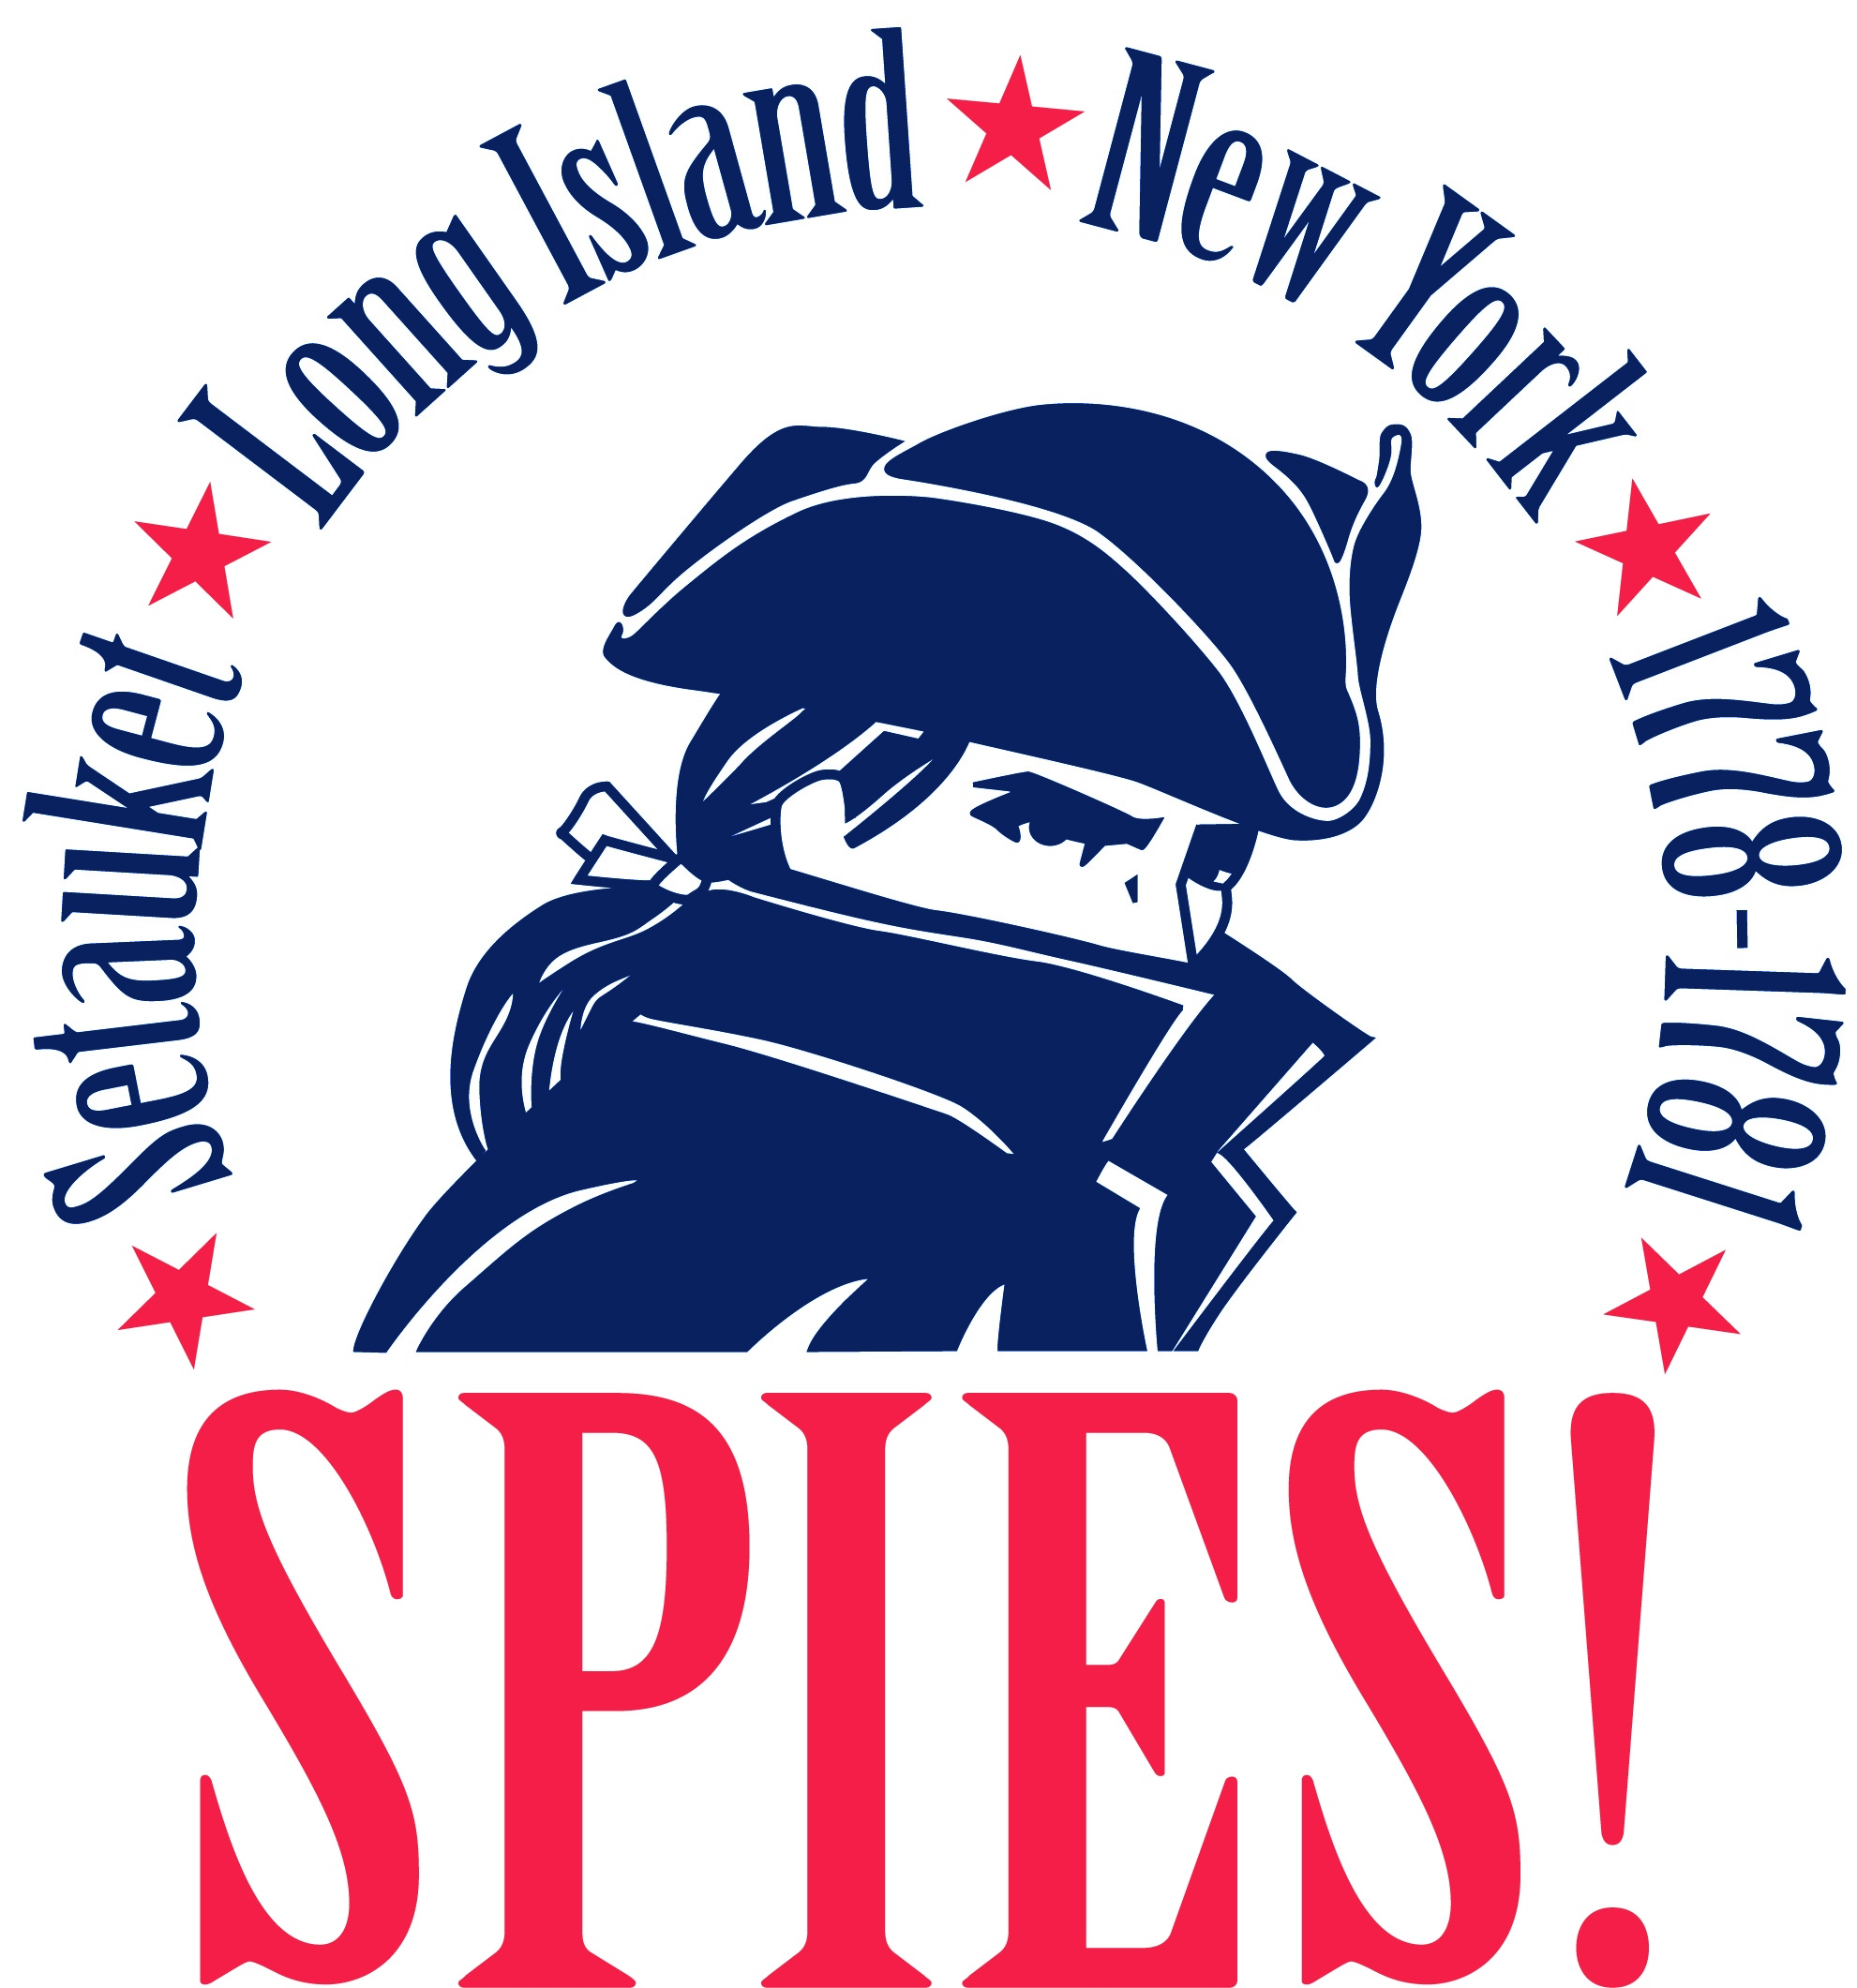 SPIES! Exhibit Logo of the Three Village Historical Society